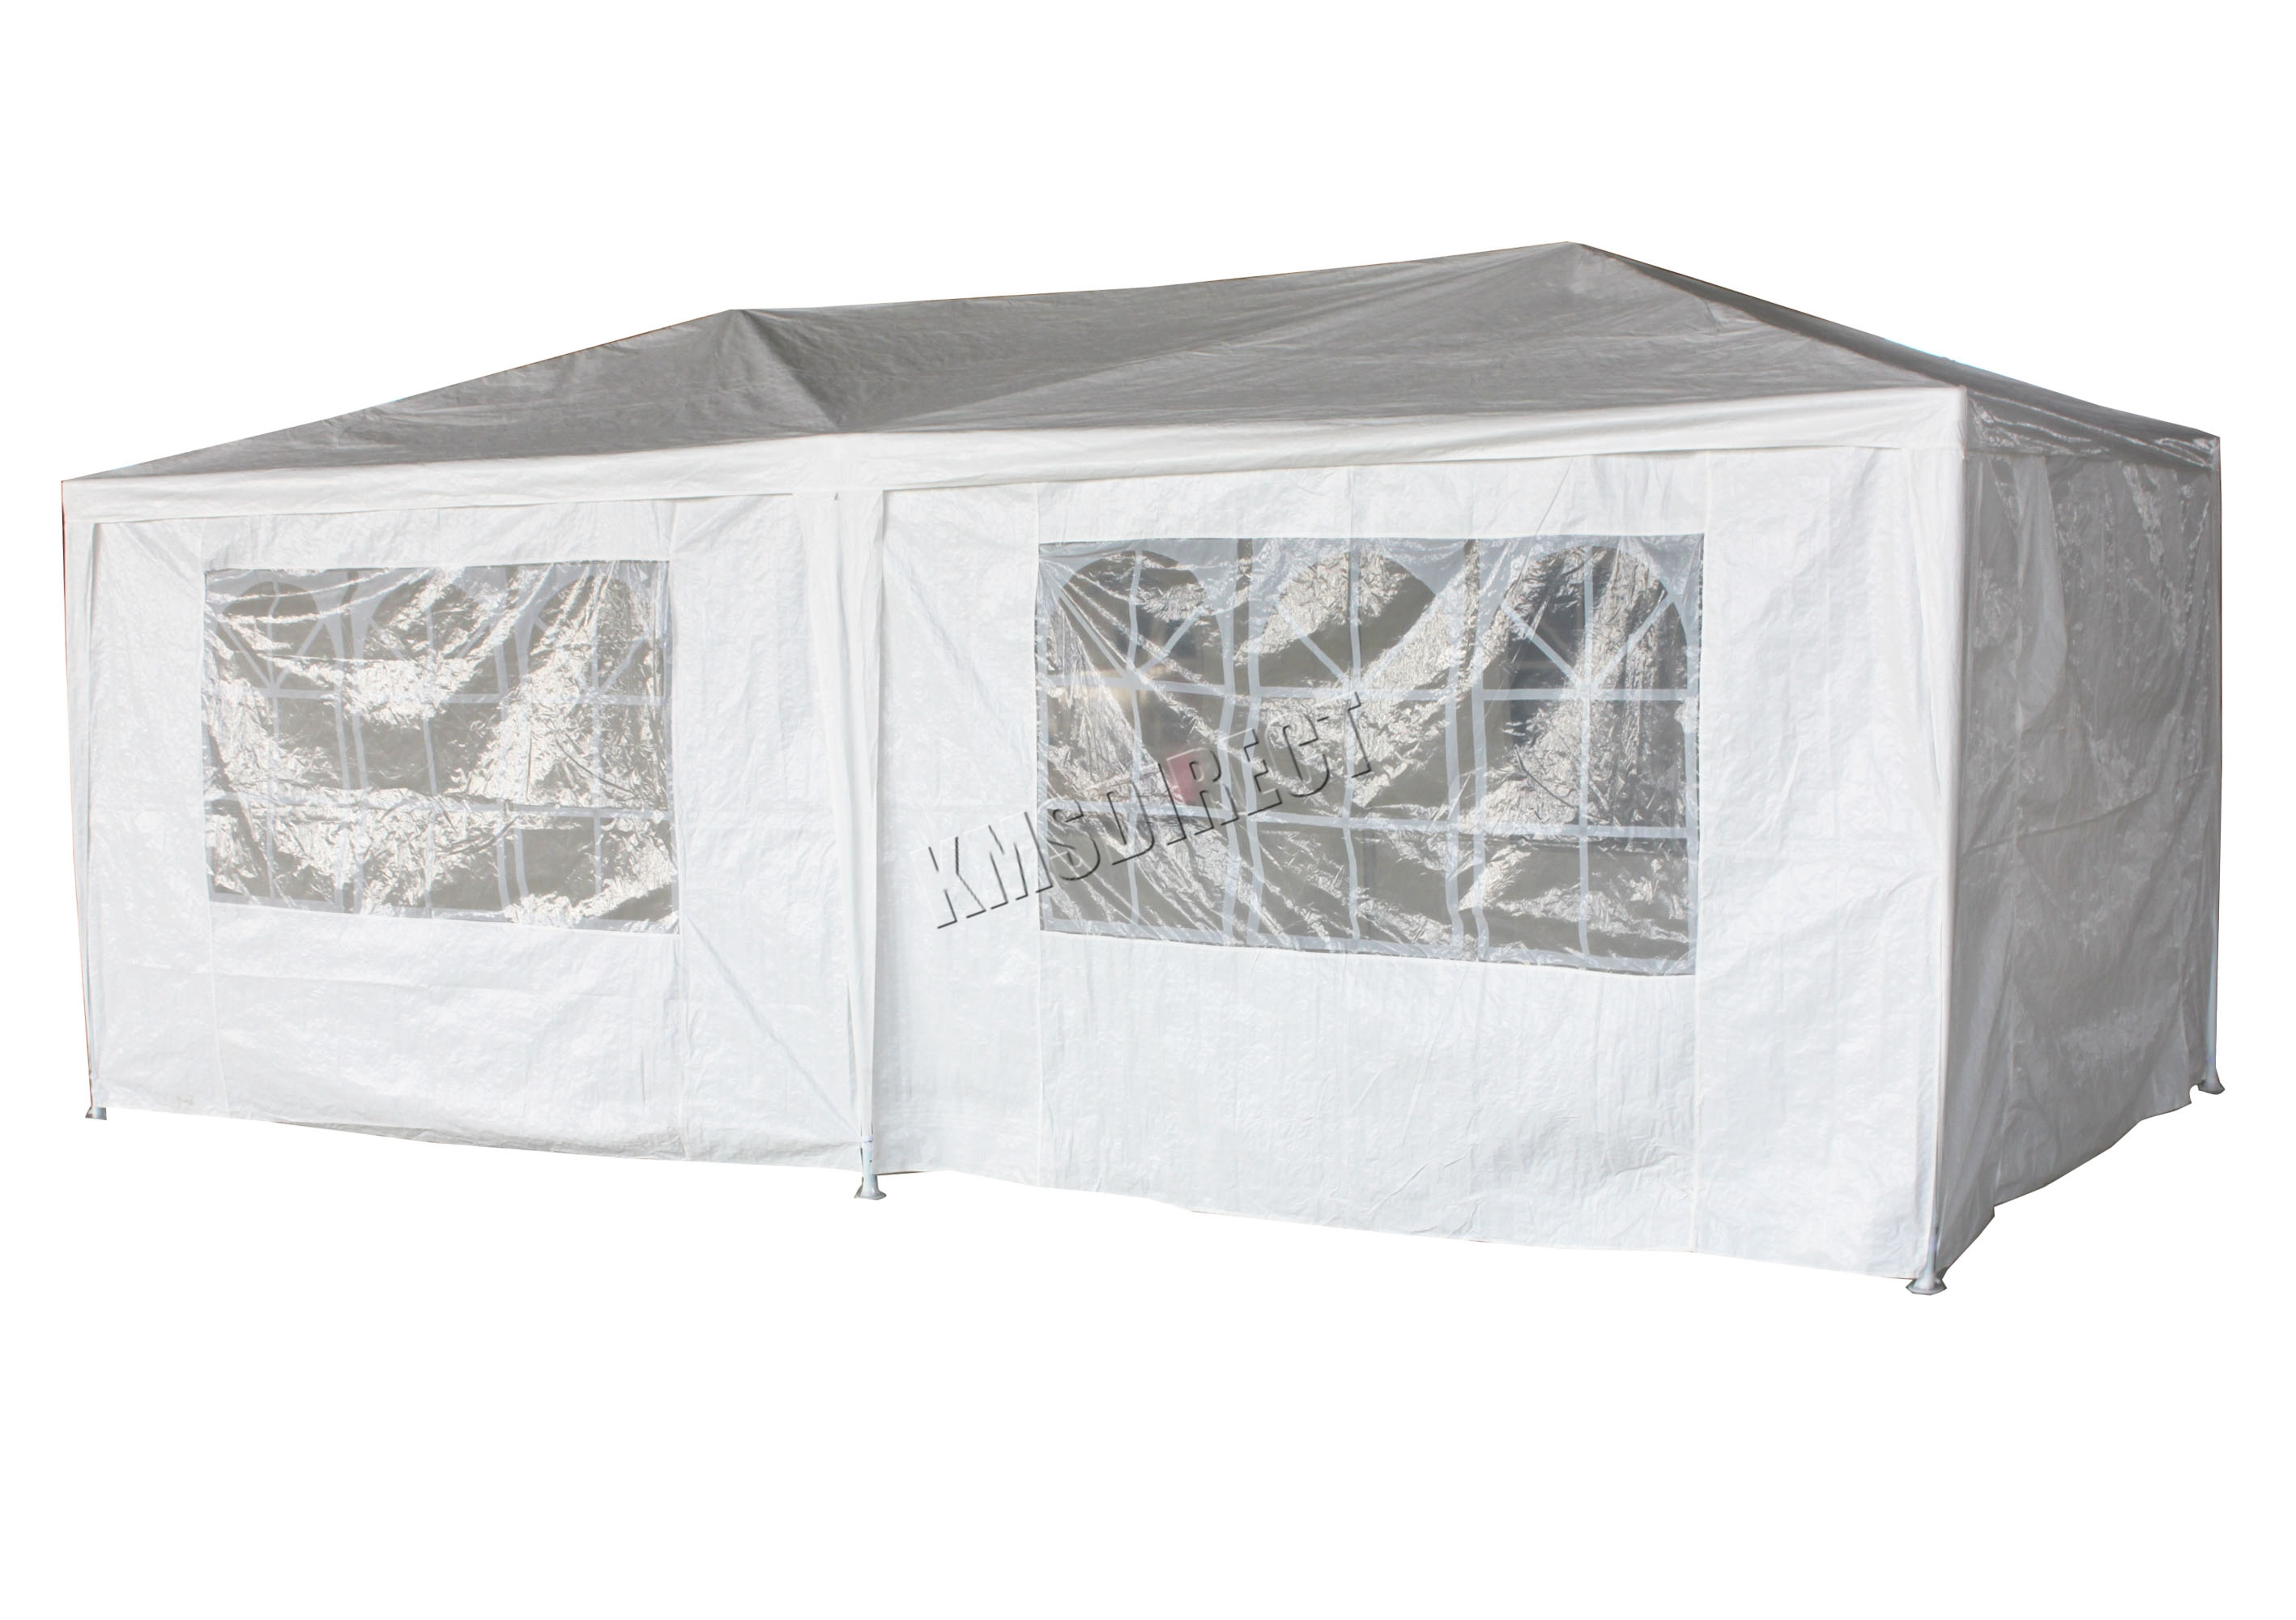 Foxhunter 6m X 3m Party Tent Marquee Gazebo Two Support